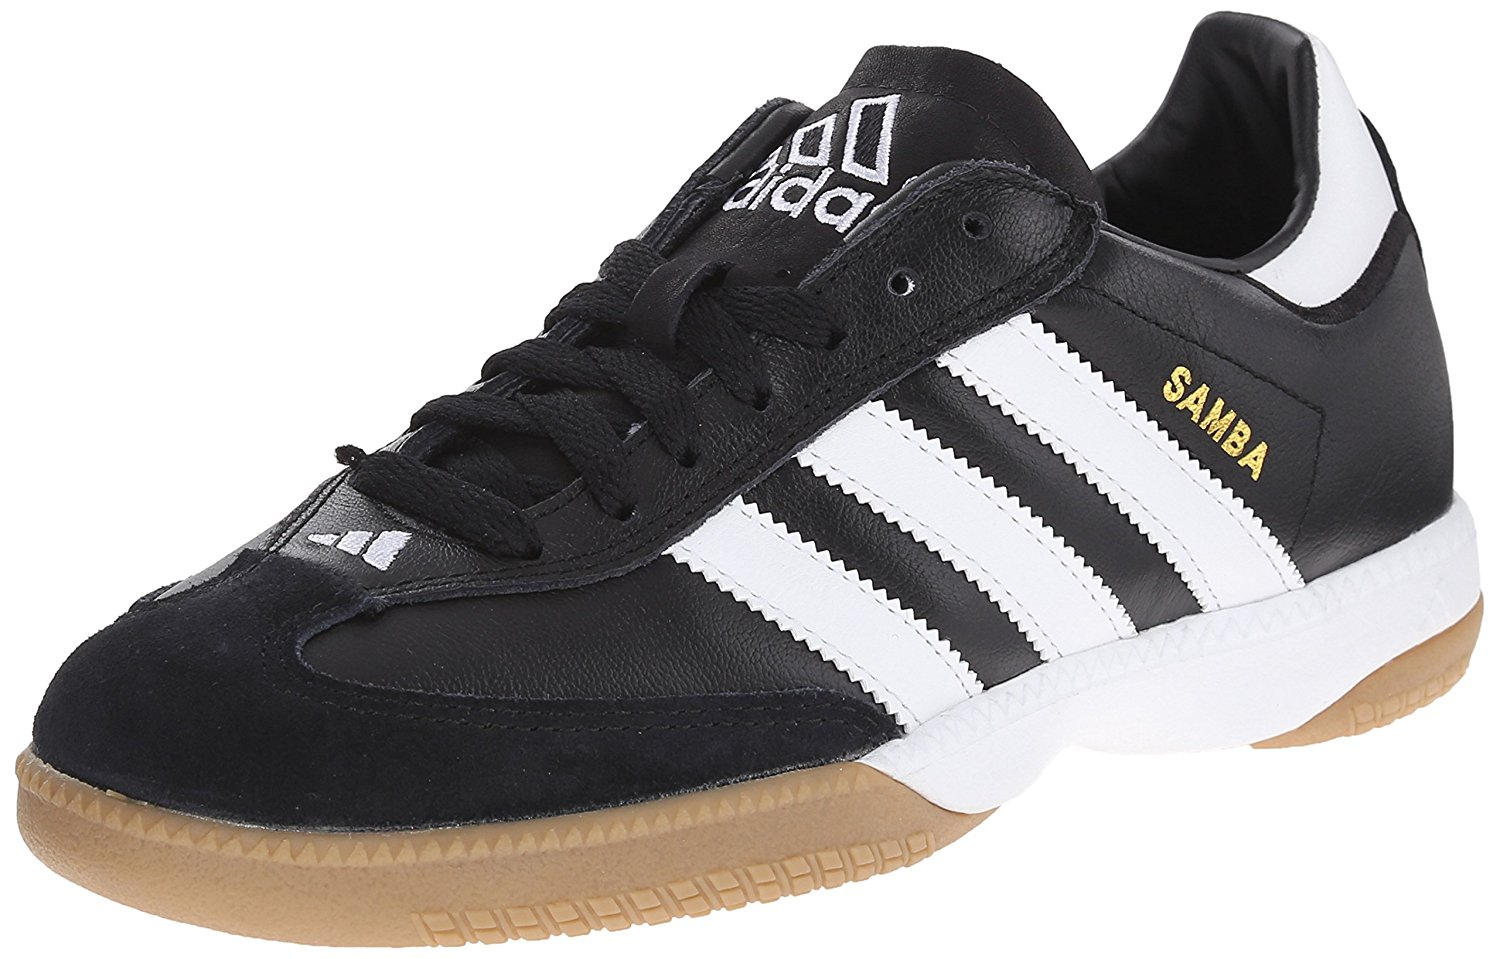 Styled just right for indoor soccer and futsal matches c648f7d233